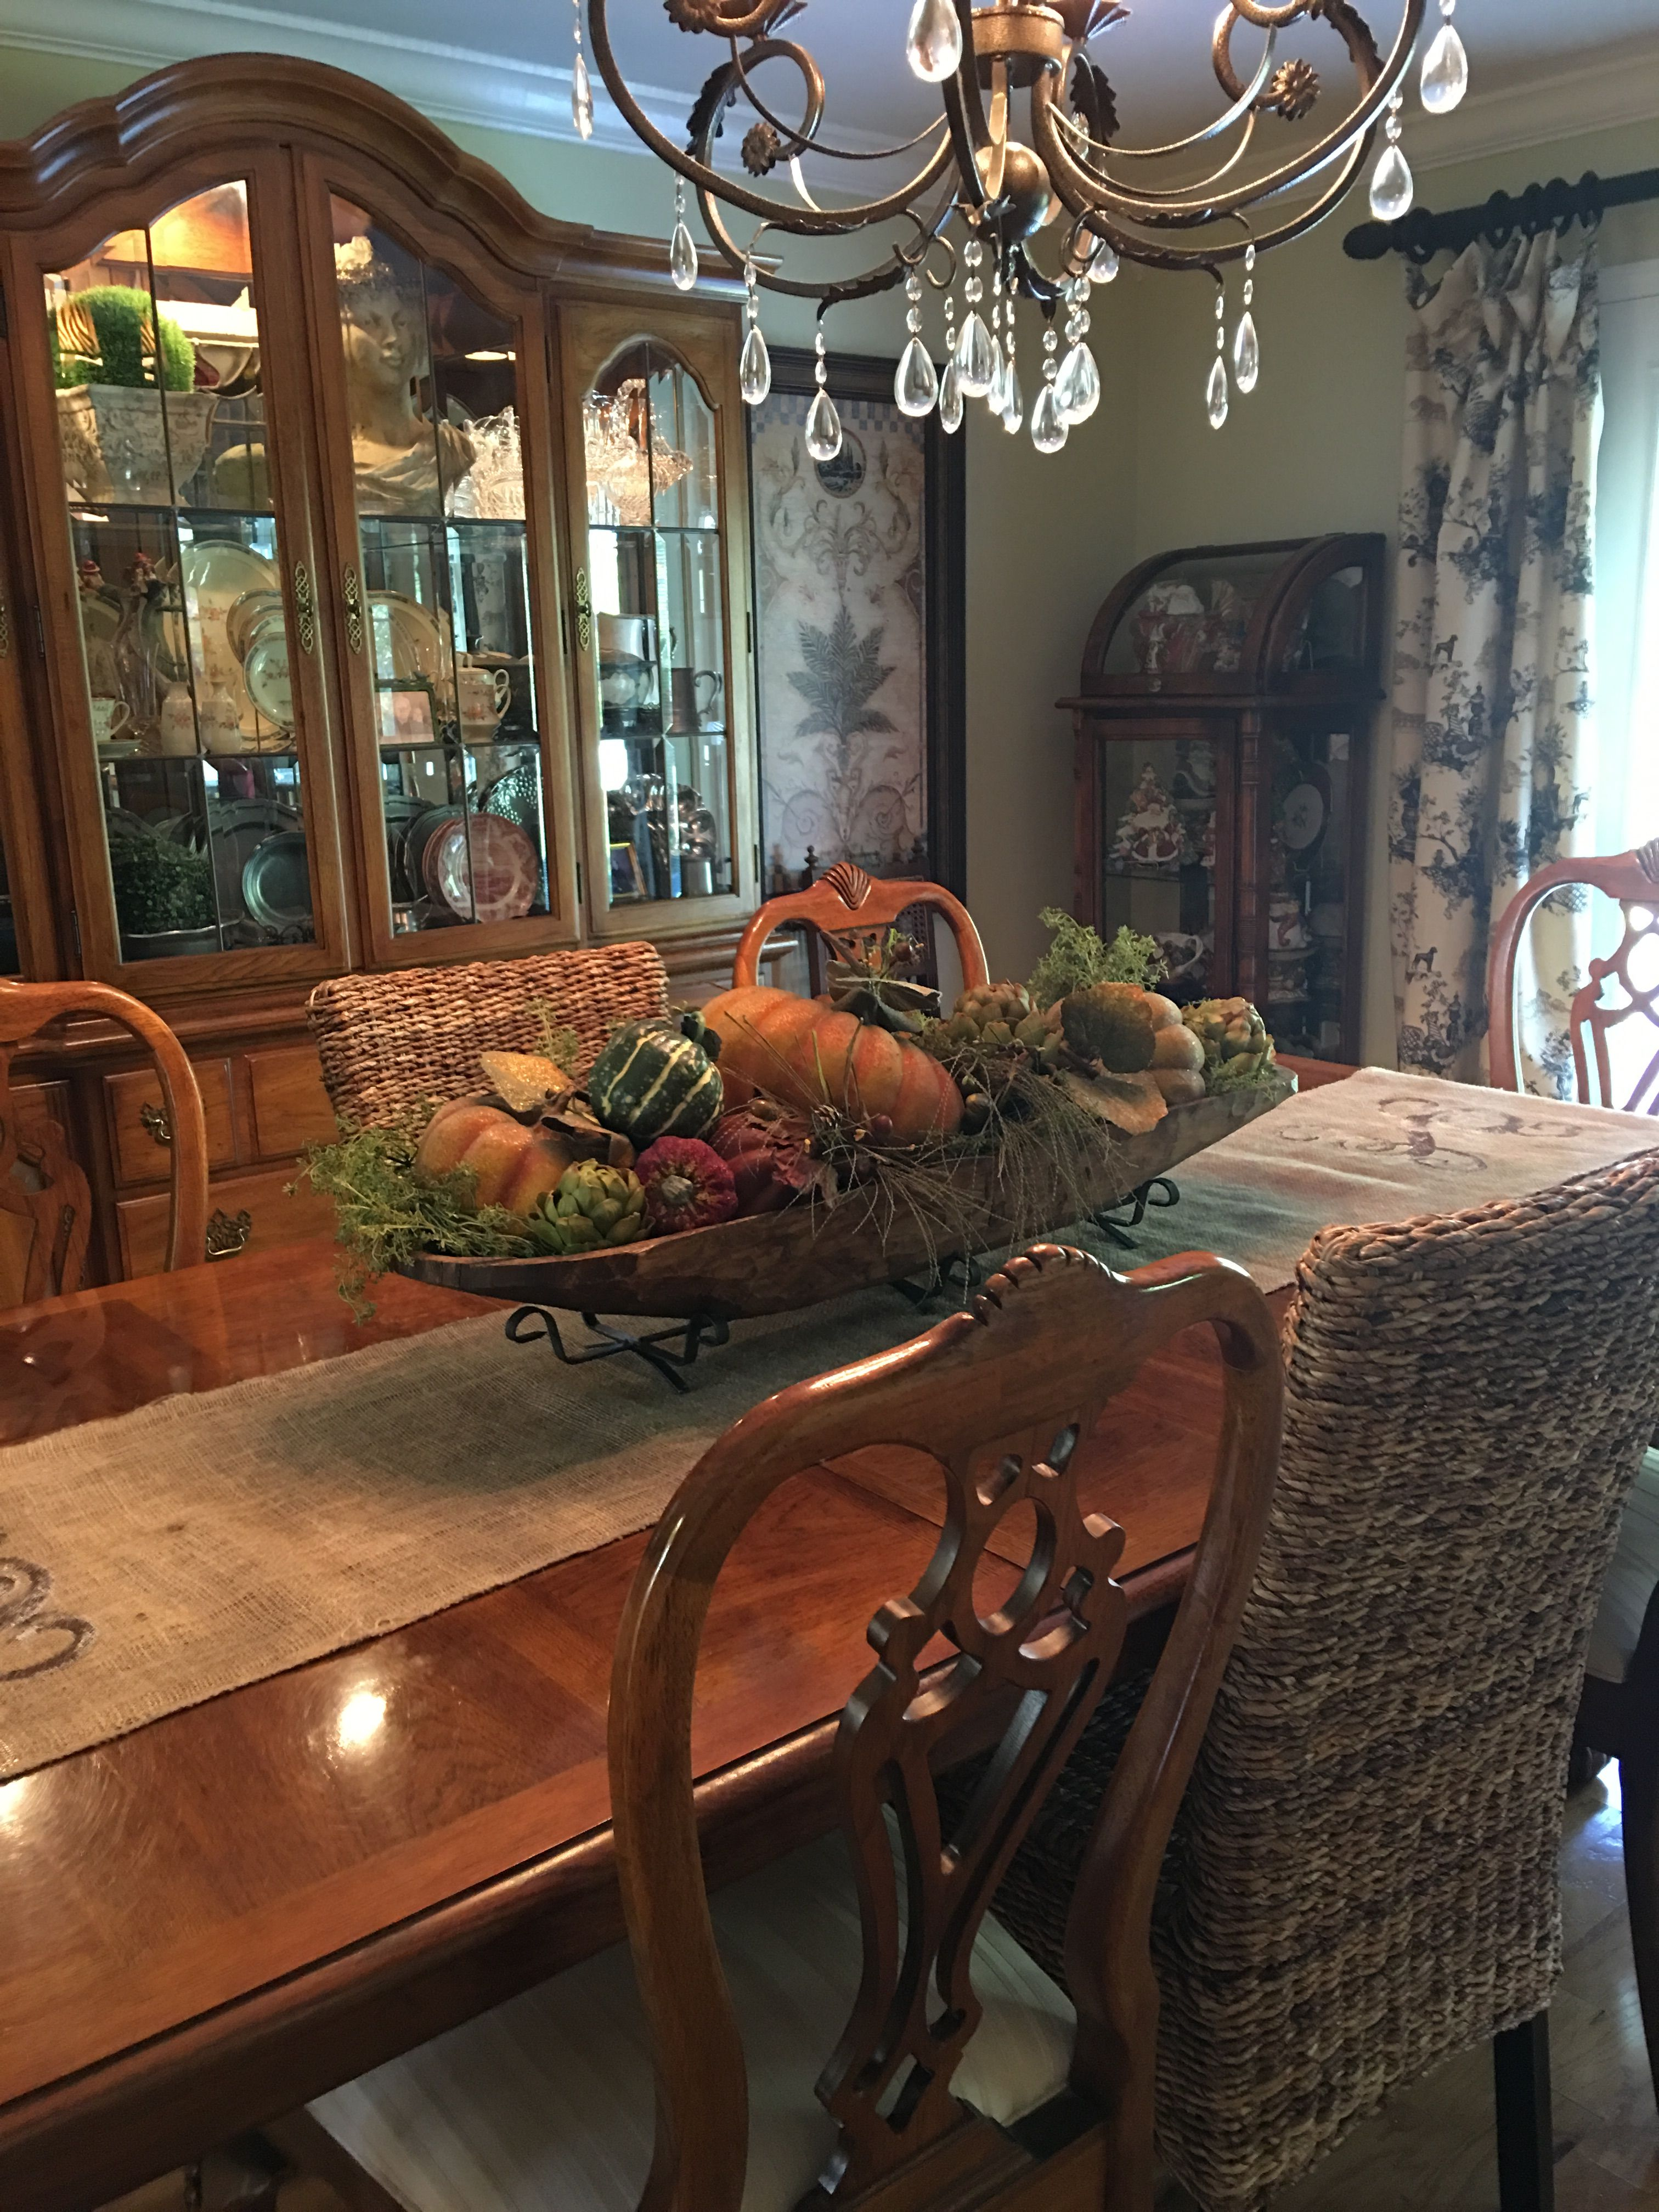 Fall Dough Bowl Dress Up Dining Room Table Centerpieces Fall